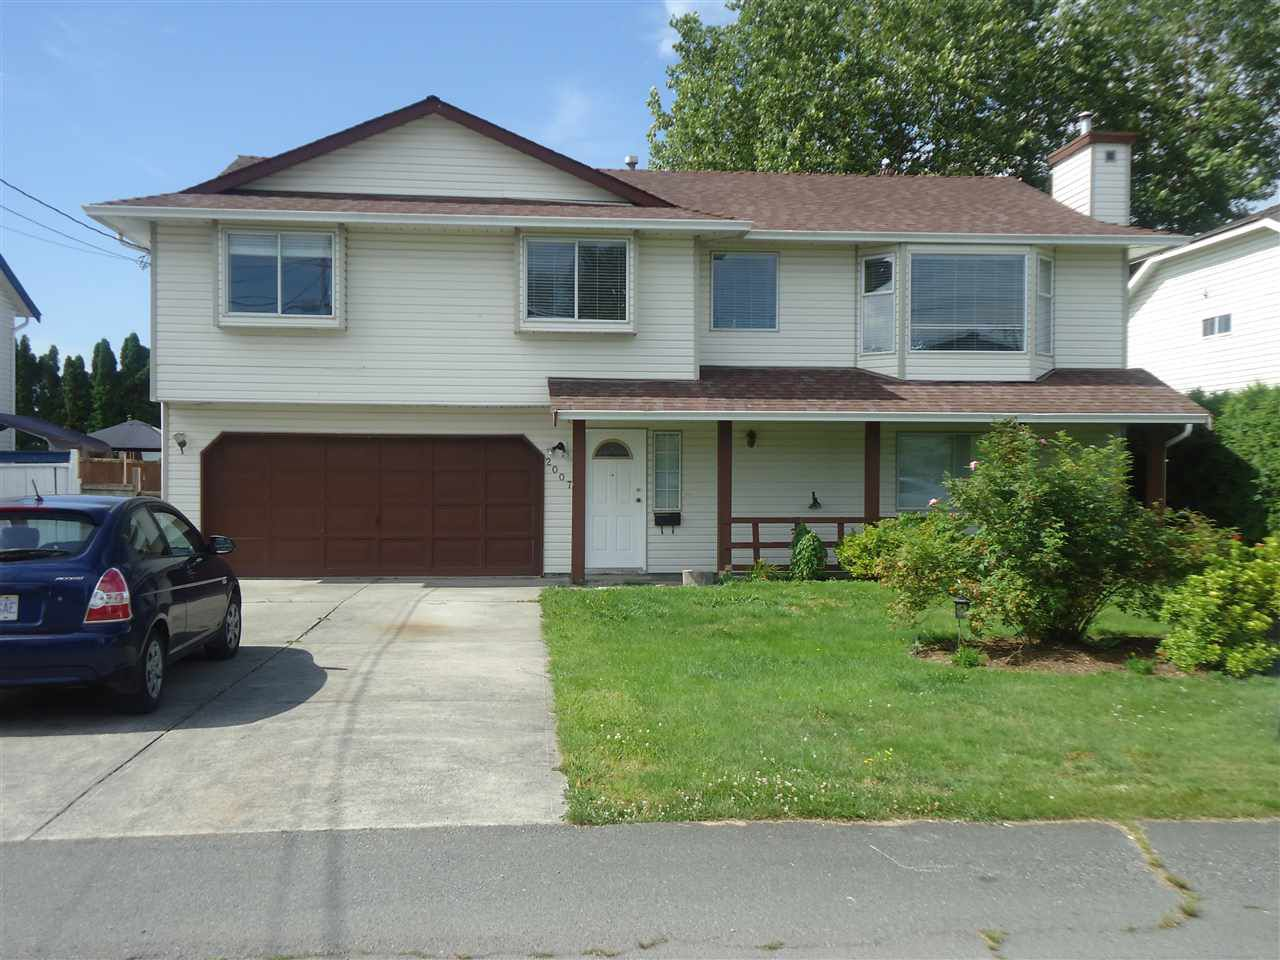 Main Photo: 20079 WANSTEAD STREET in Maple Ridge: Southwest Maple Ridge House for sale : MLS®# R2095367